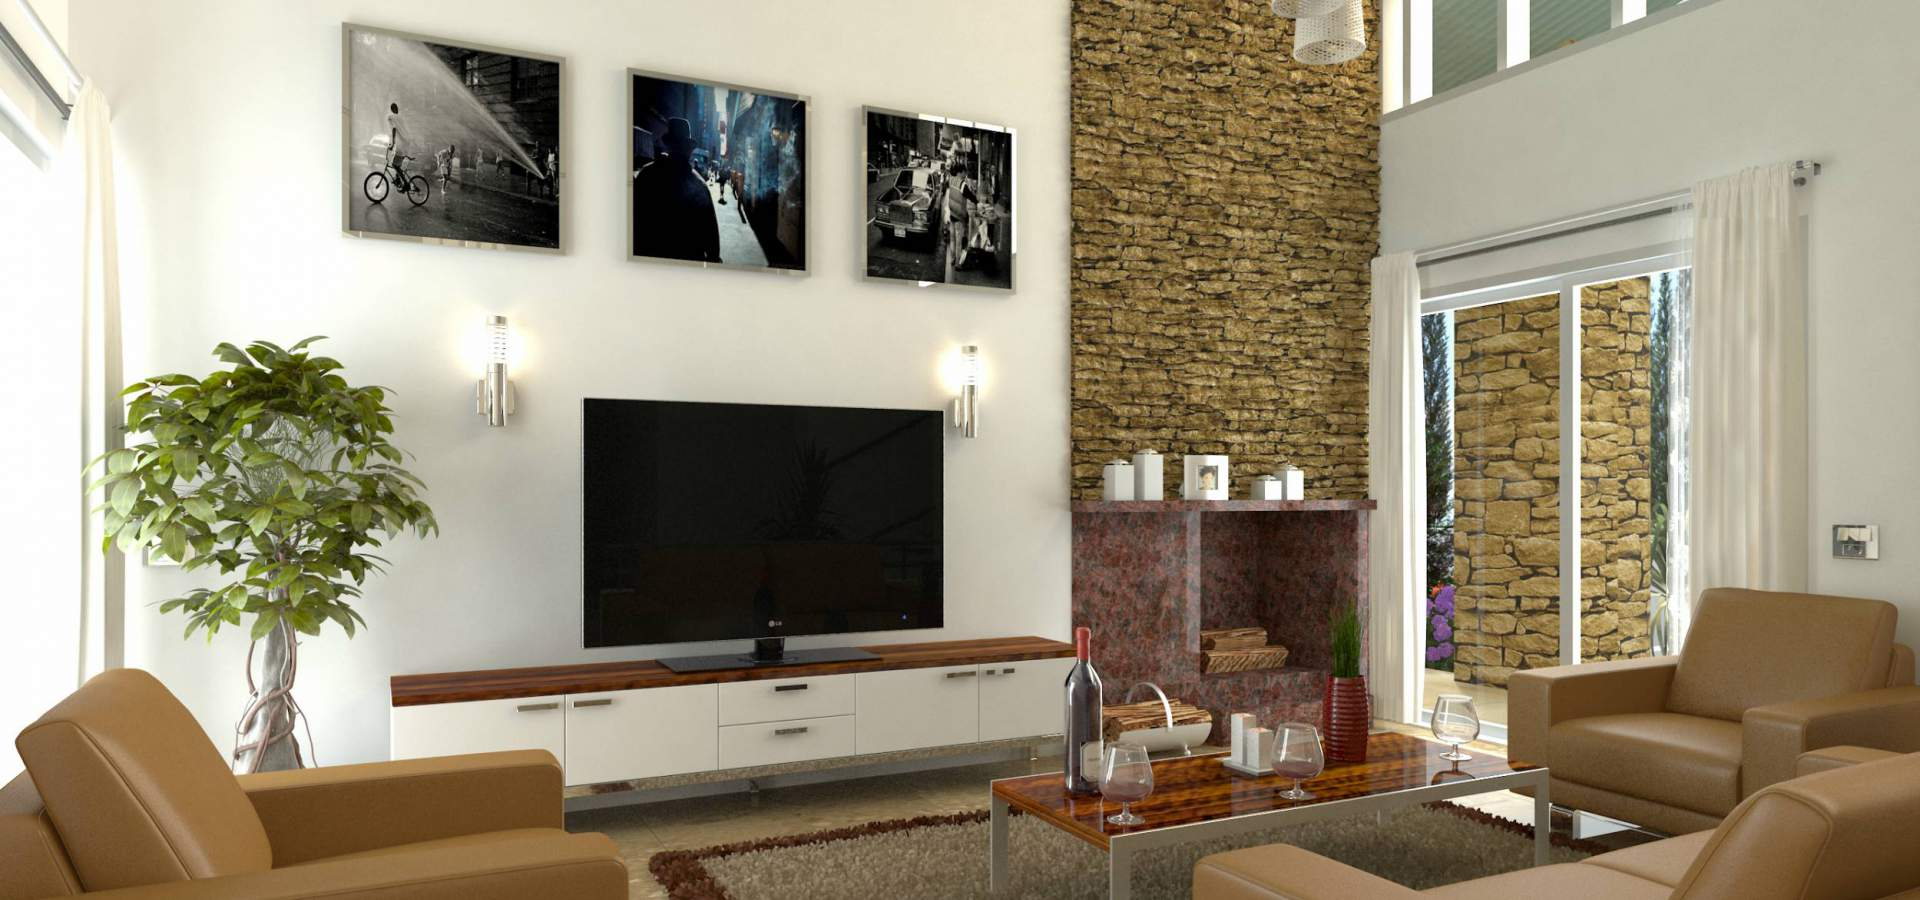 Konia Luxury Houses Interior Design